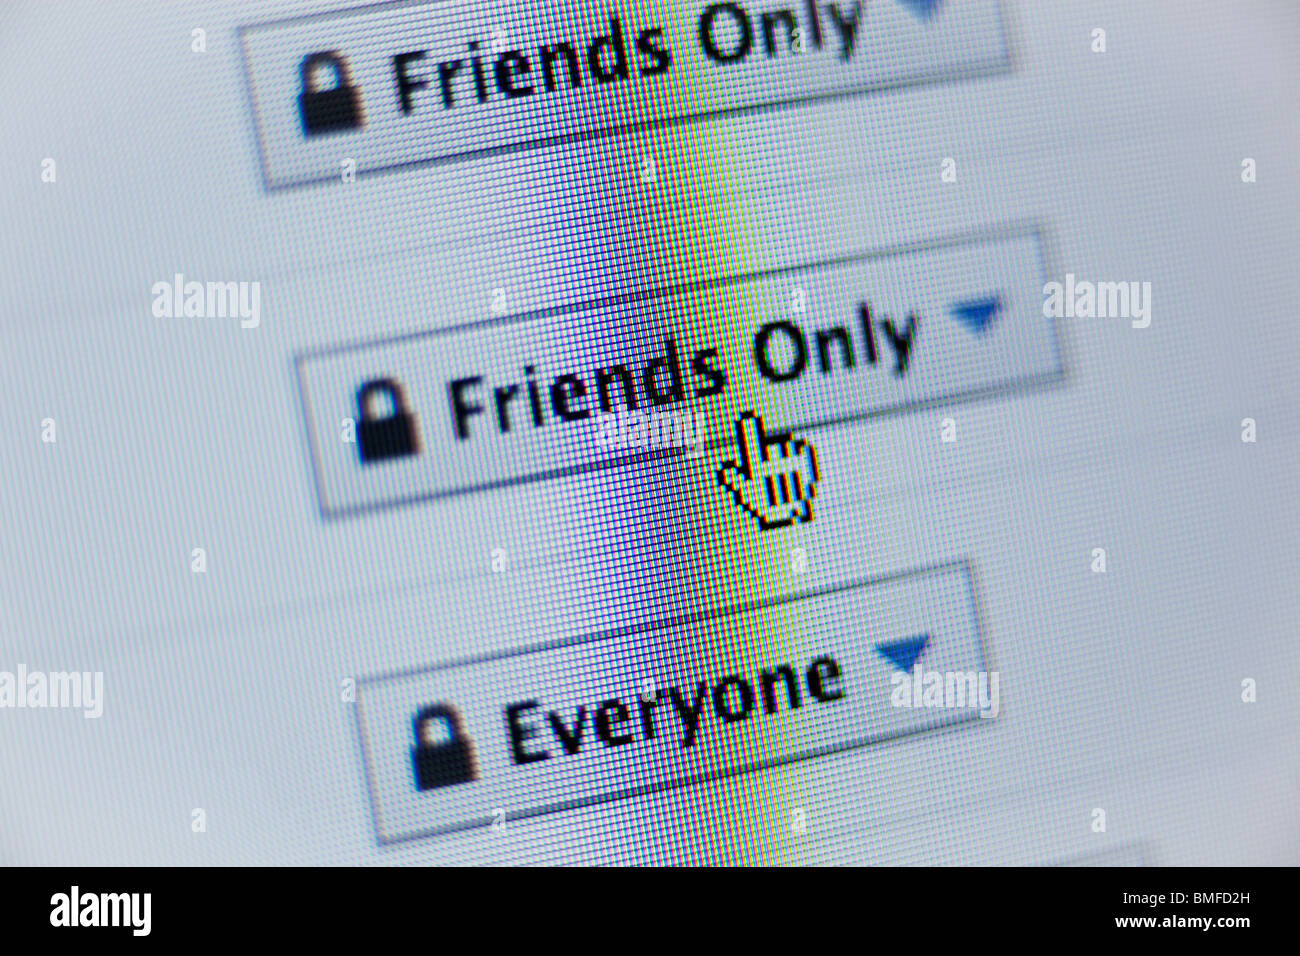 Privacy settings on Facebook website - Stock Image